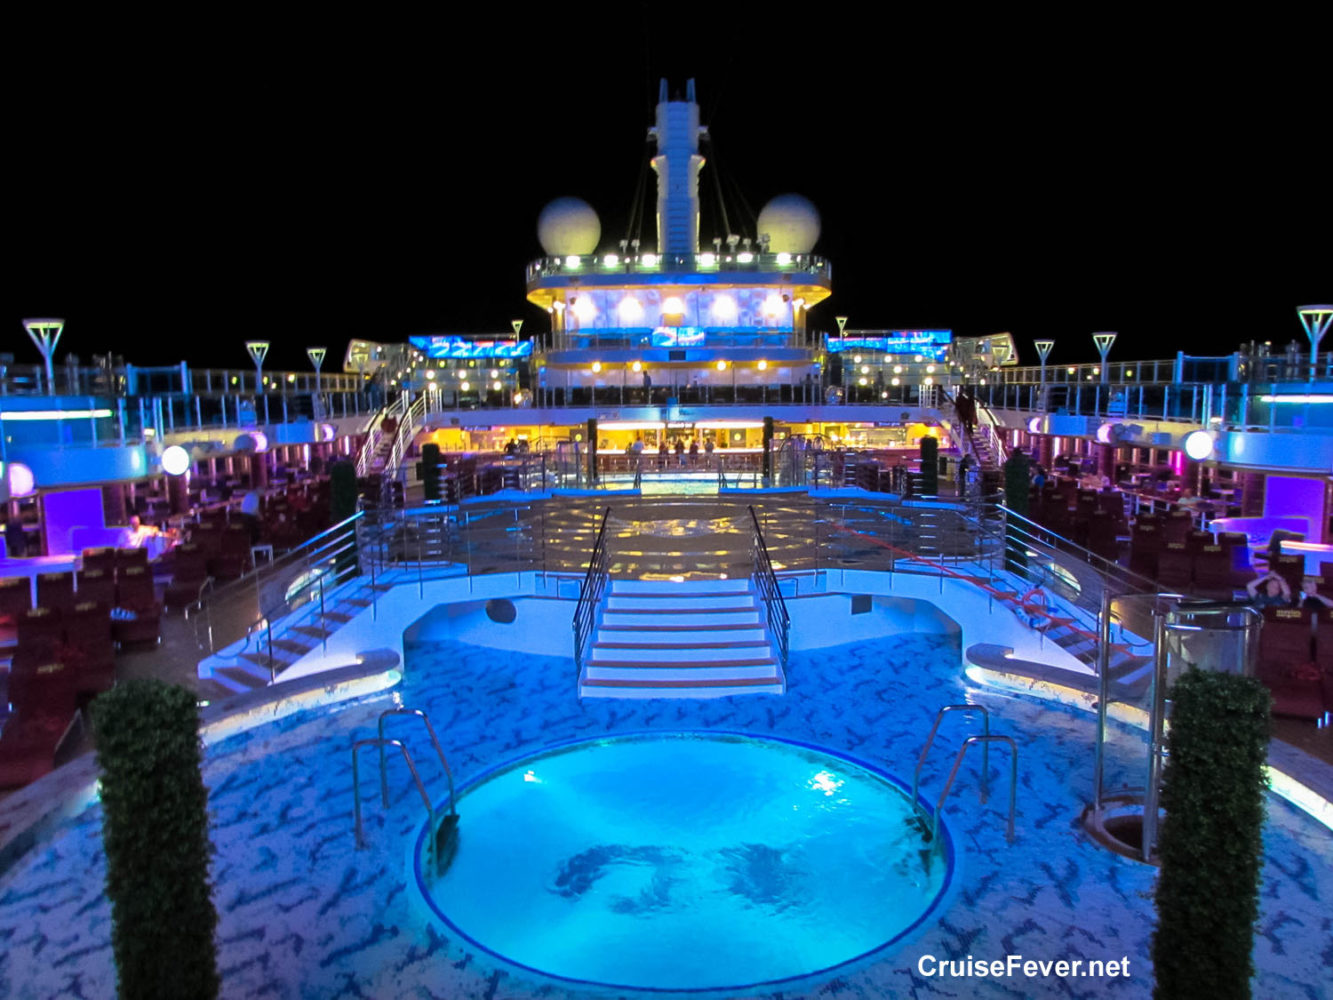 princess cruise Sapphire princess cruise ship itinerary schedule, 2018-2019-2020 itineraries (ports, dates, prices), cruise tracker (ship location/current position tracking), review, news.